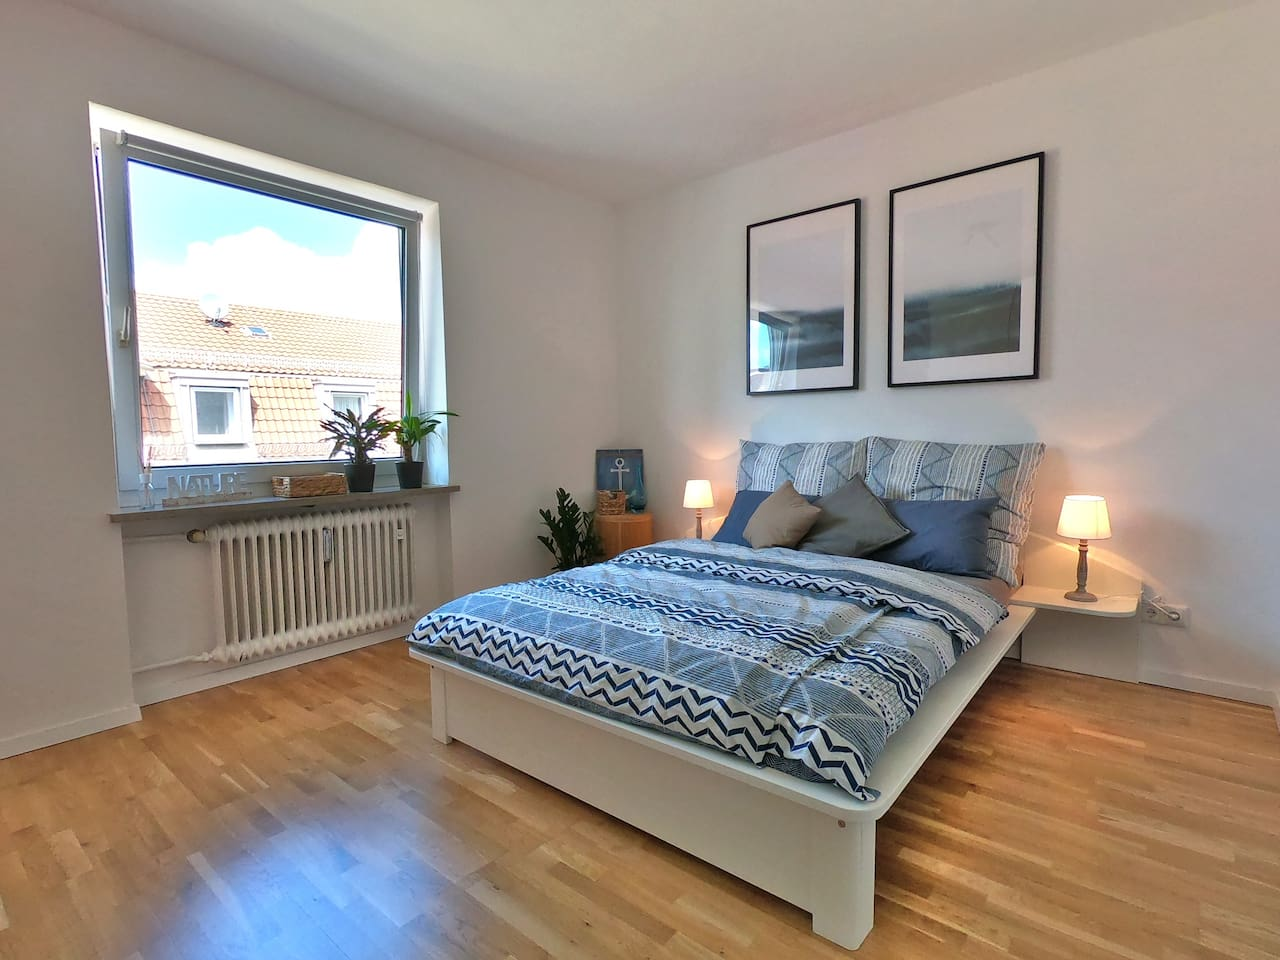 Guest room - Bright and modern guest room with parquet floor. Includes bed, USB-multicharger, wardrobe and table lamps. In addition to the Picture there is a table, 2 chairs and curtains.